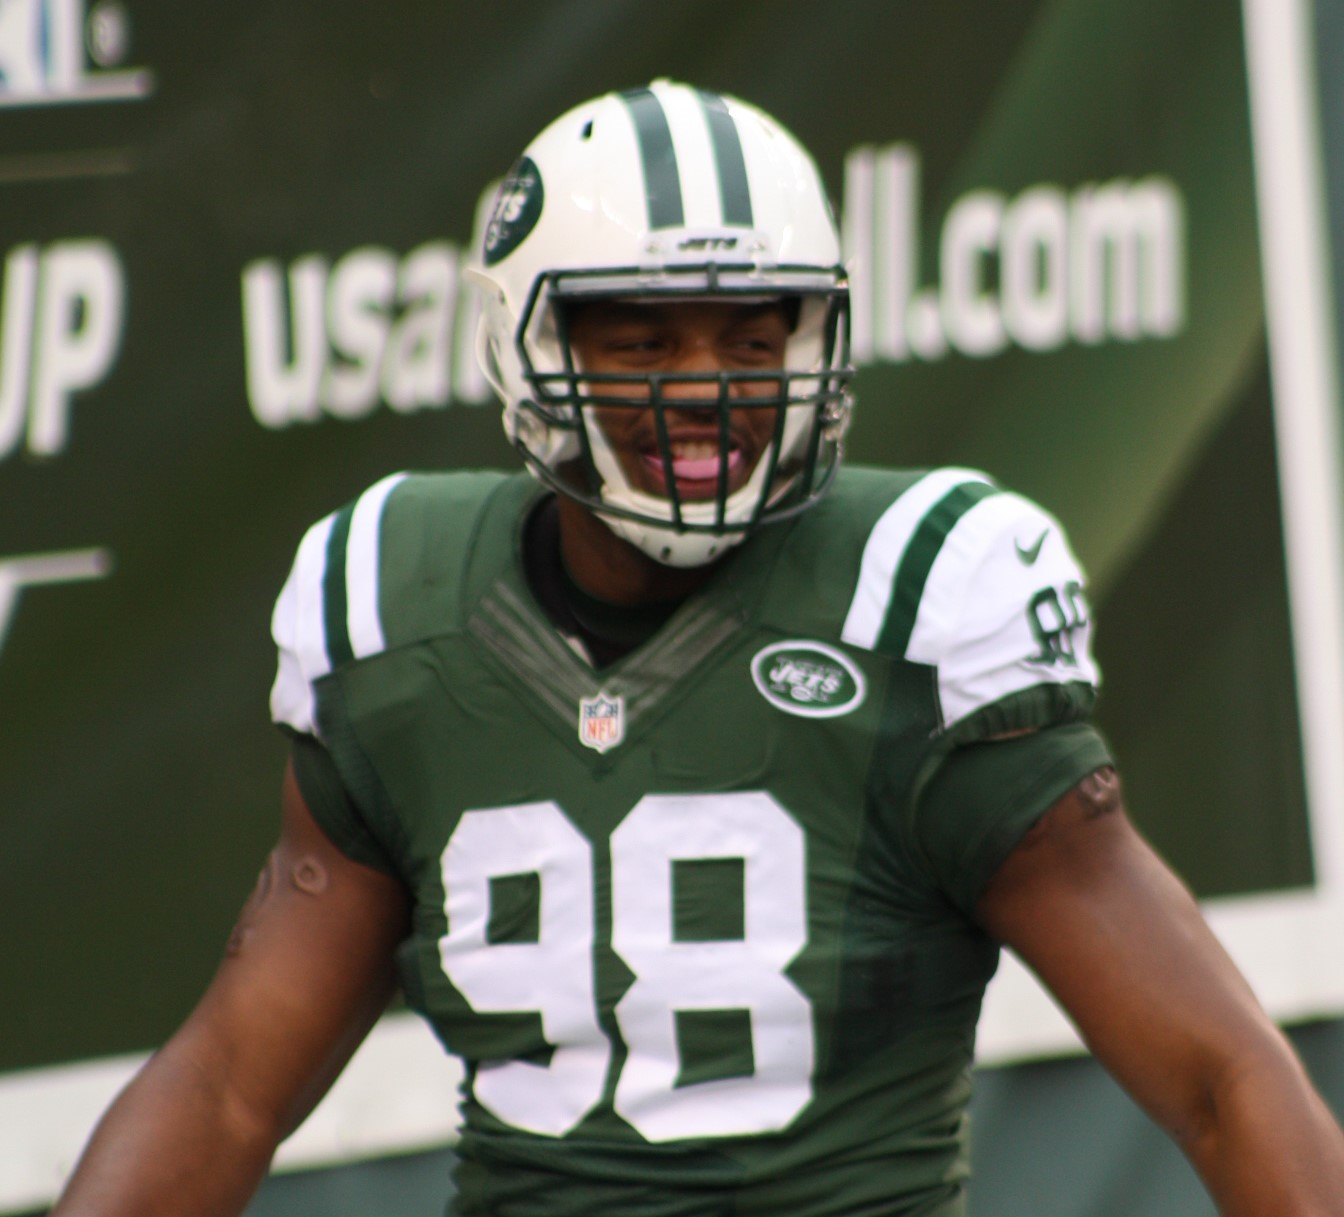 Jets to Pick up Coples' Option